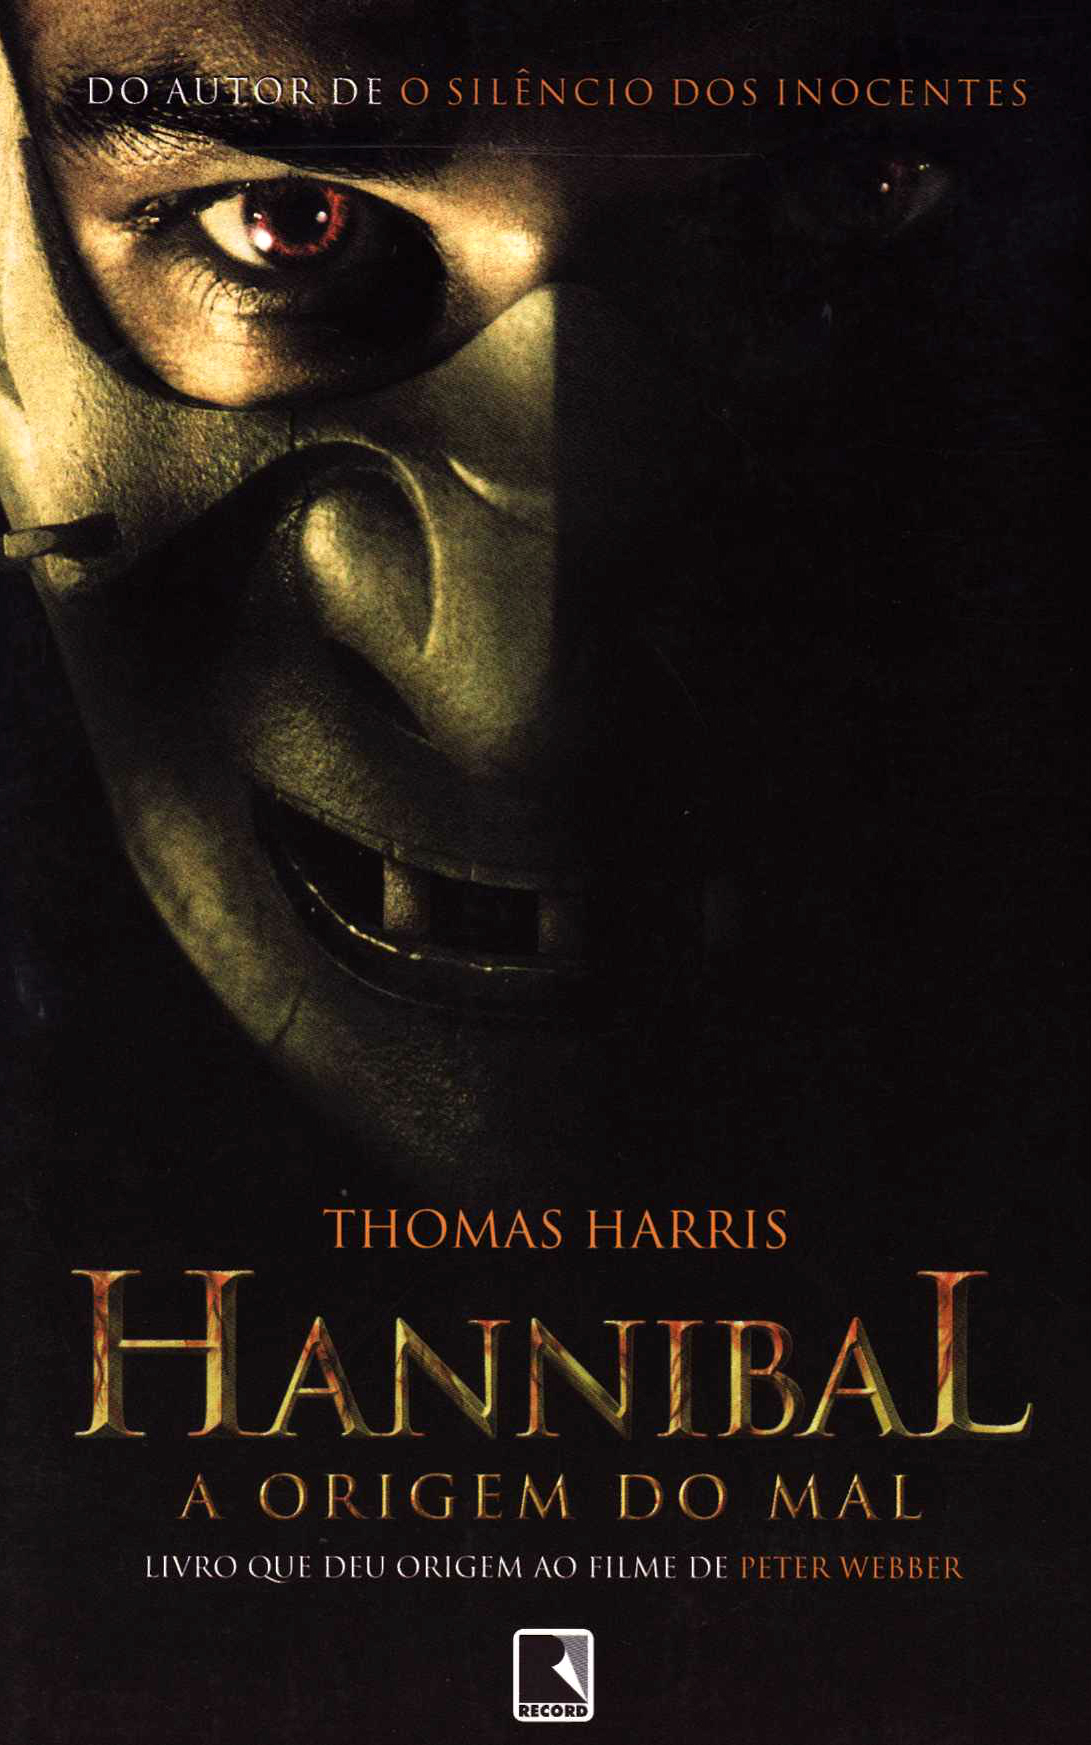 Hannibal - A Origem do Mal - Thomas Harris